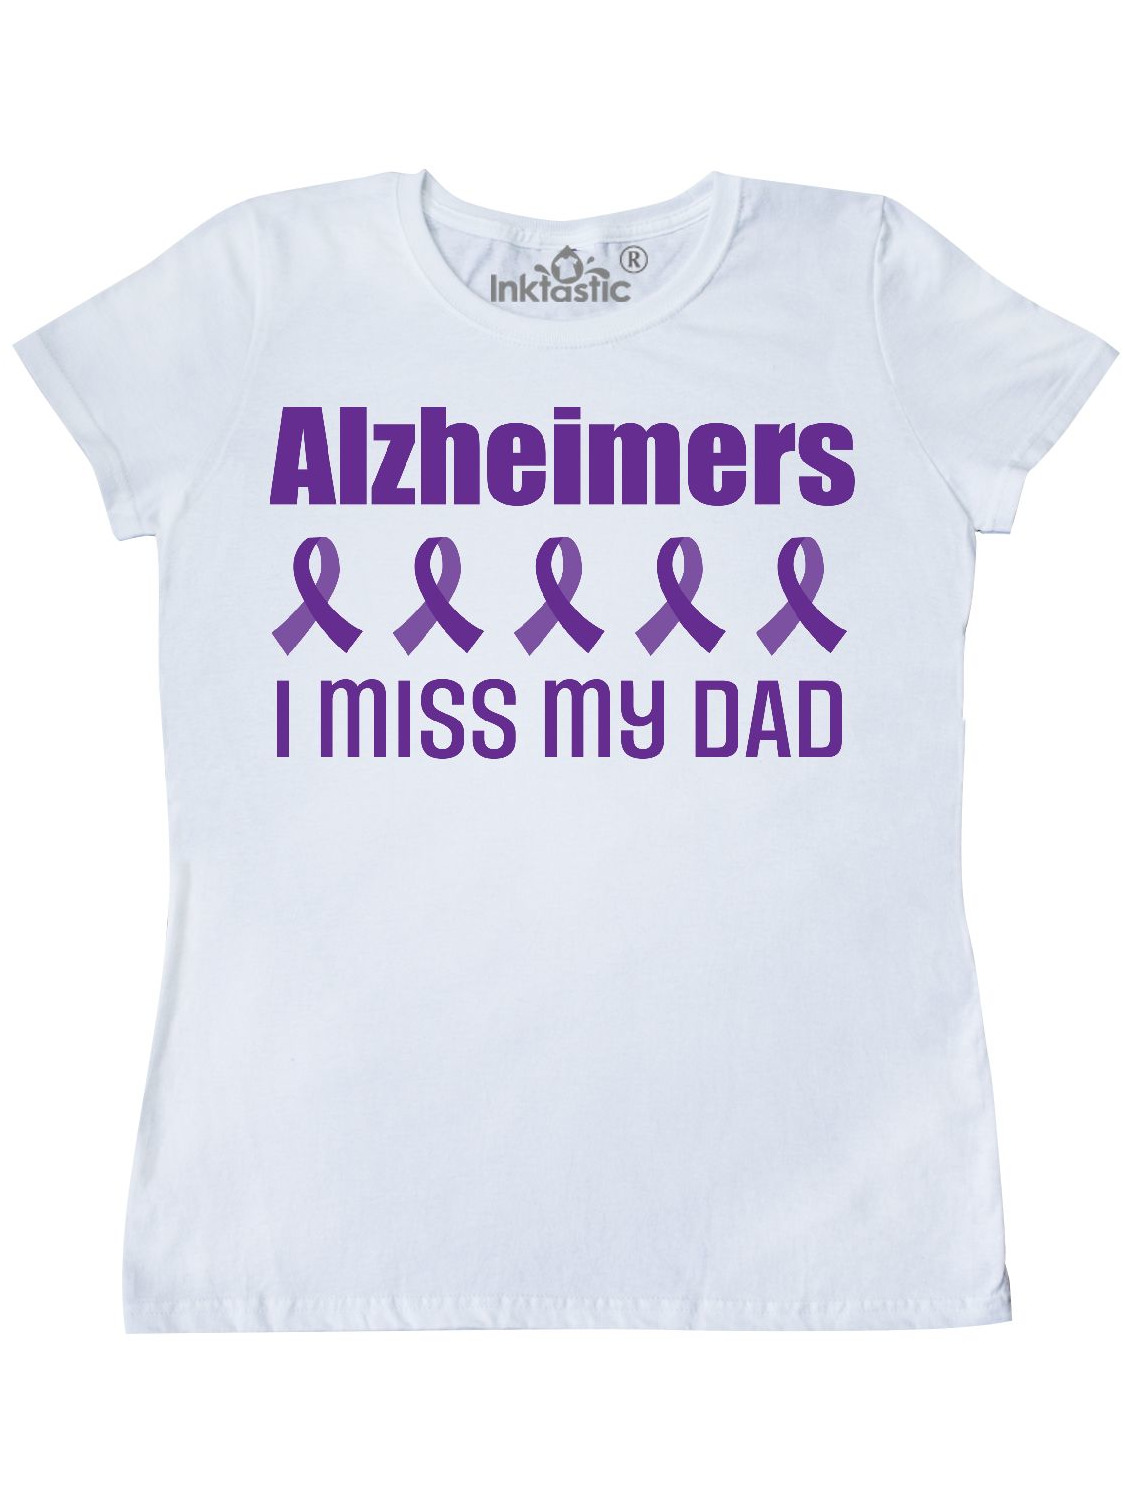 Alzheimers Awareness Women/'s V-Neck T-Shirt Inktastic I Wear Purple For My Dad